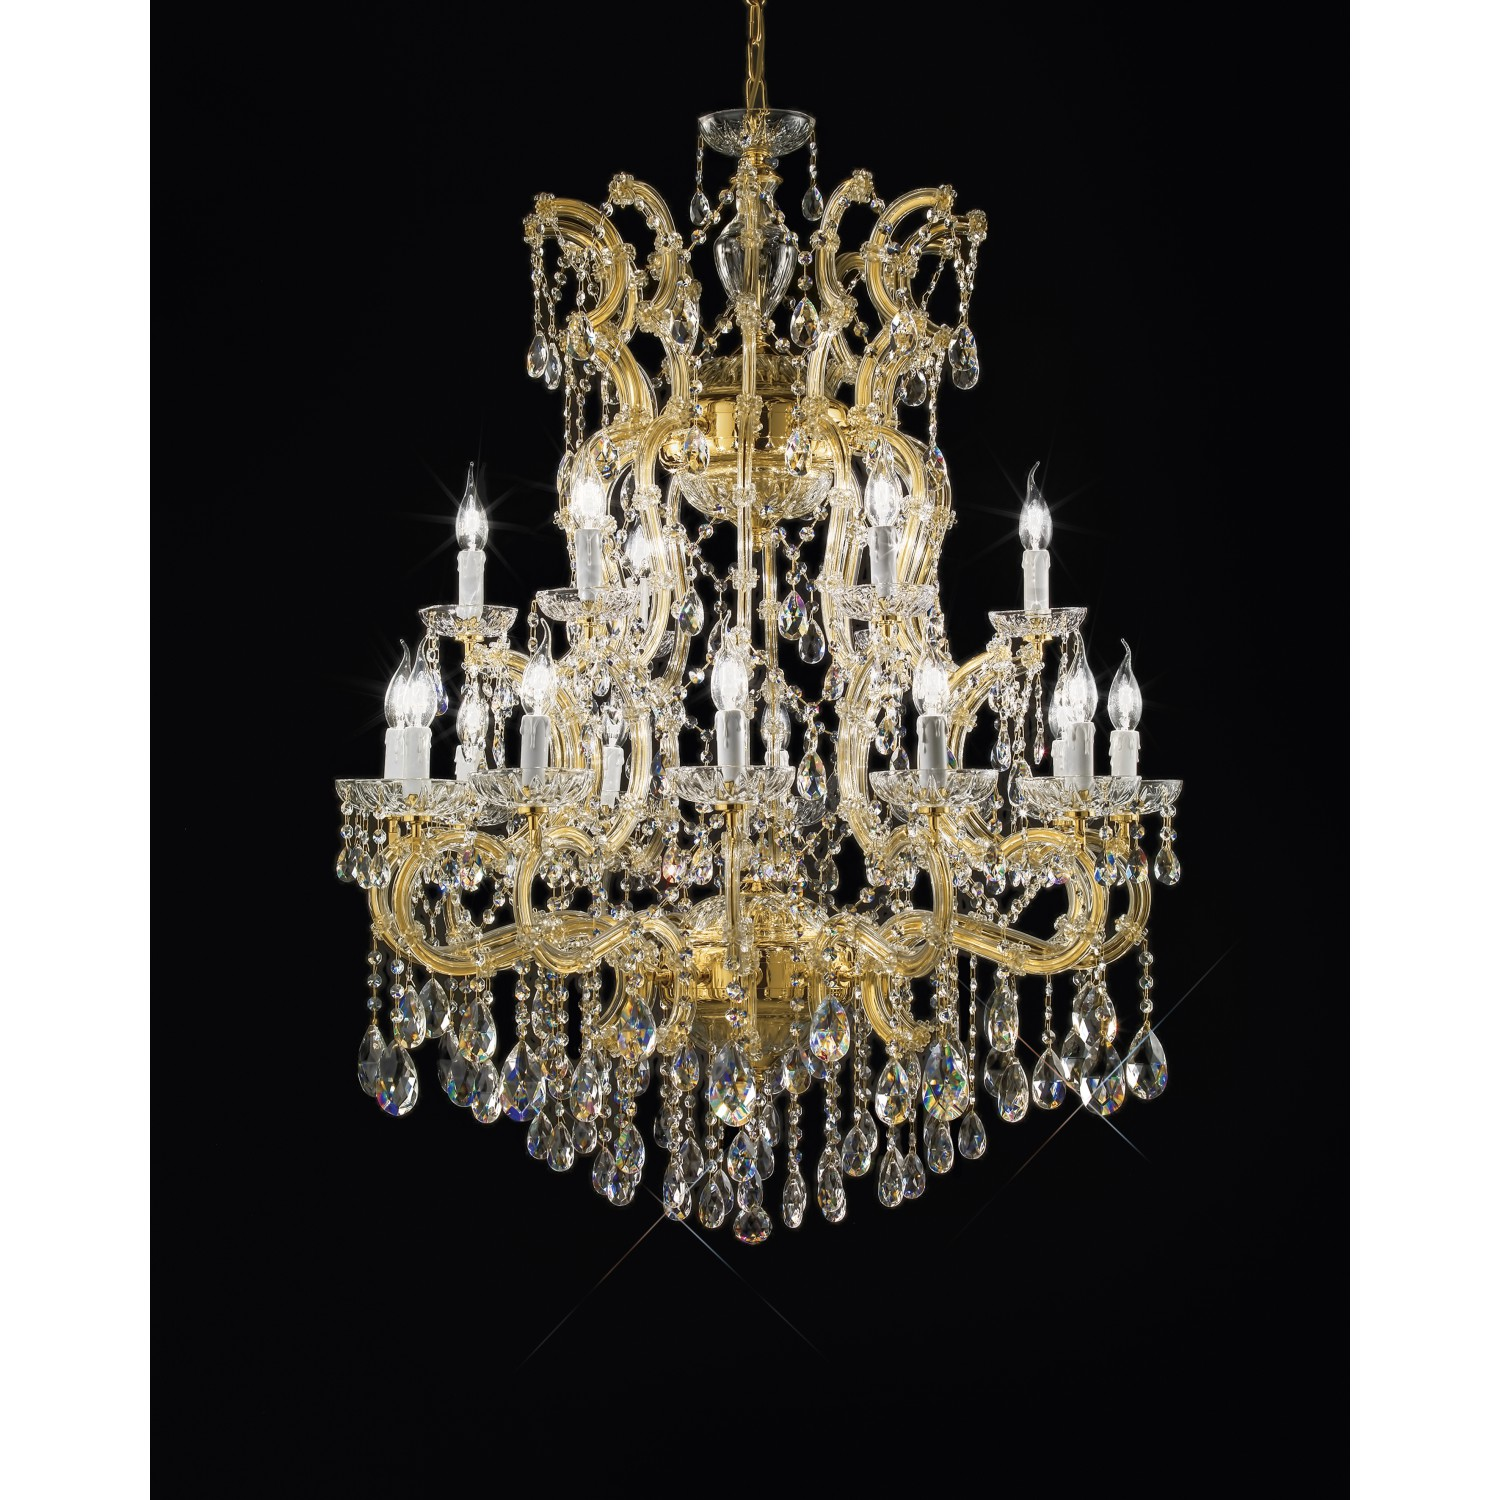 Asfour crystal chandelier 488126olasf artital lighting home asfour crystal chandelier 488126olasf aloadofball